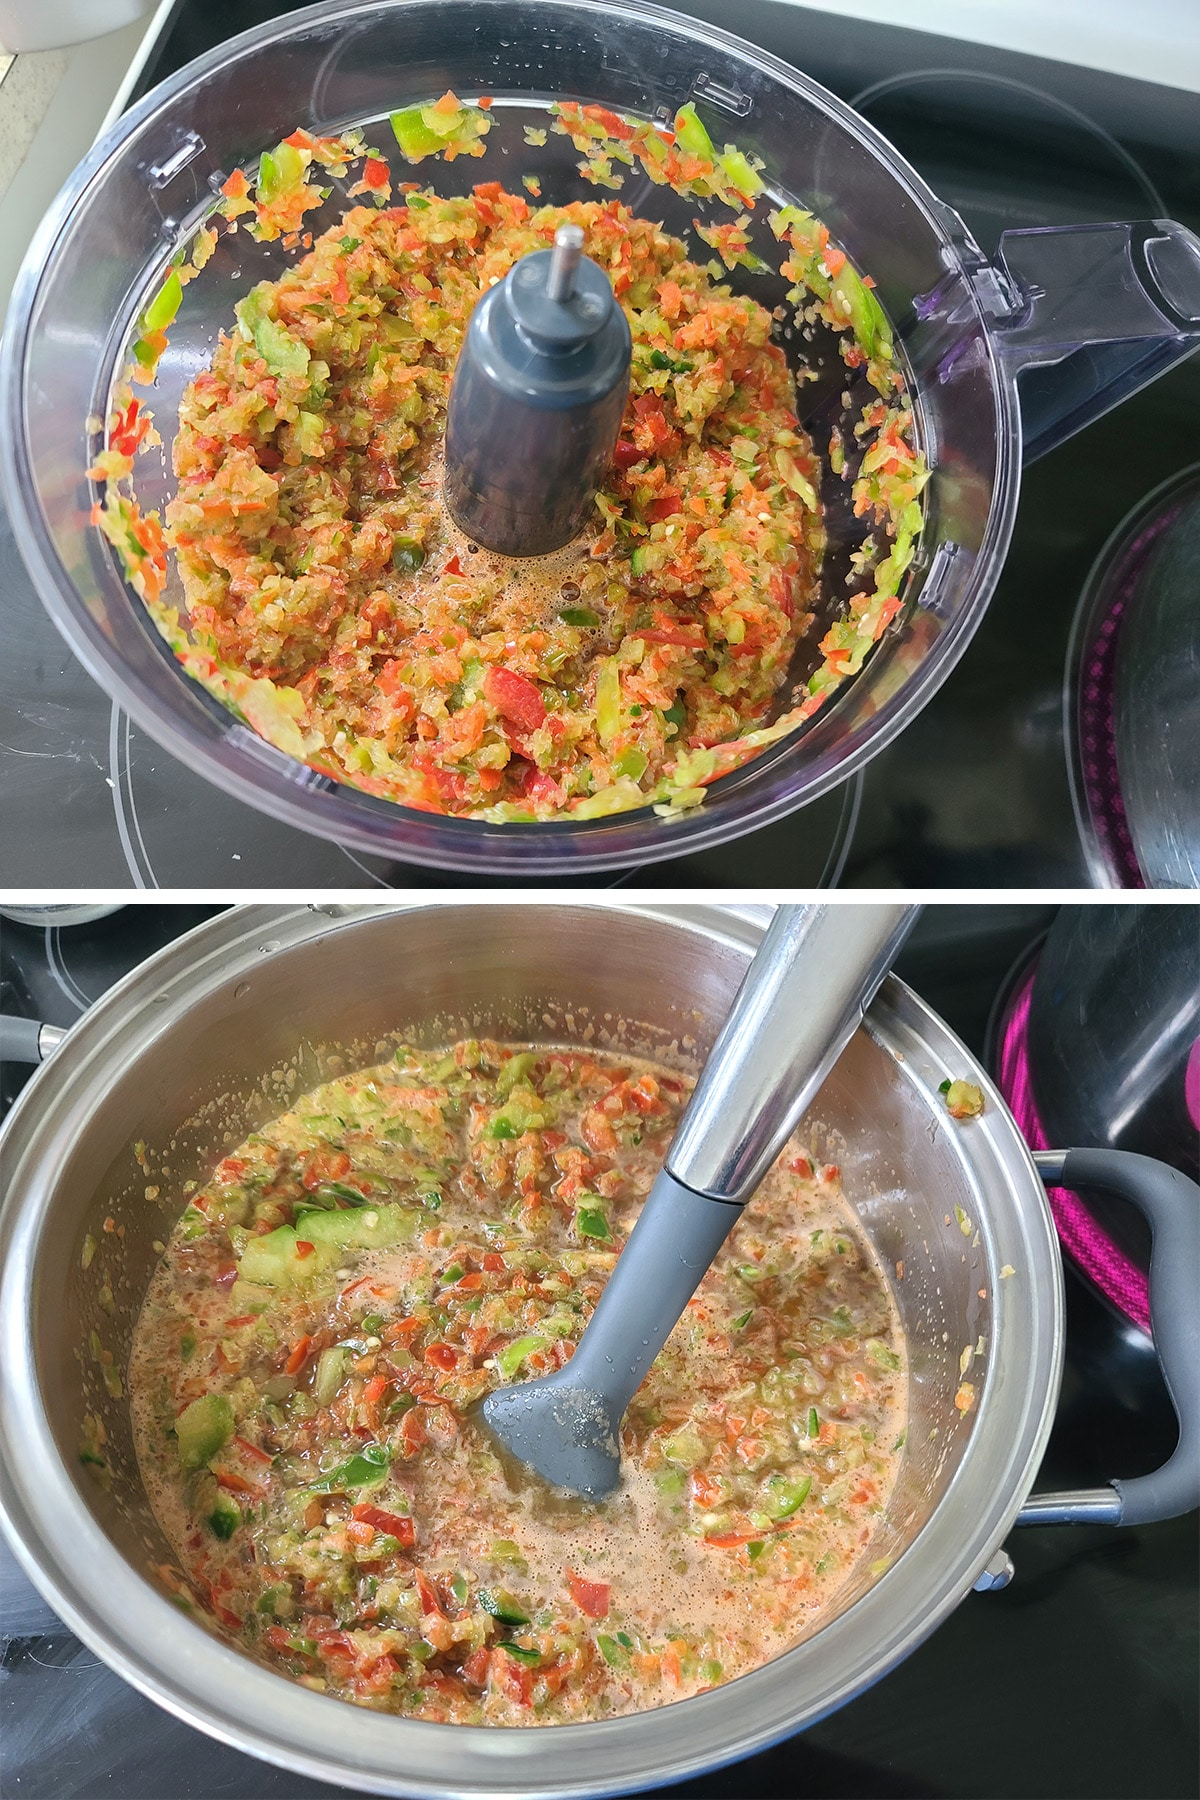 A finely chopped peppers in a food processor, then added to the pot.